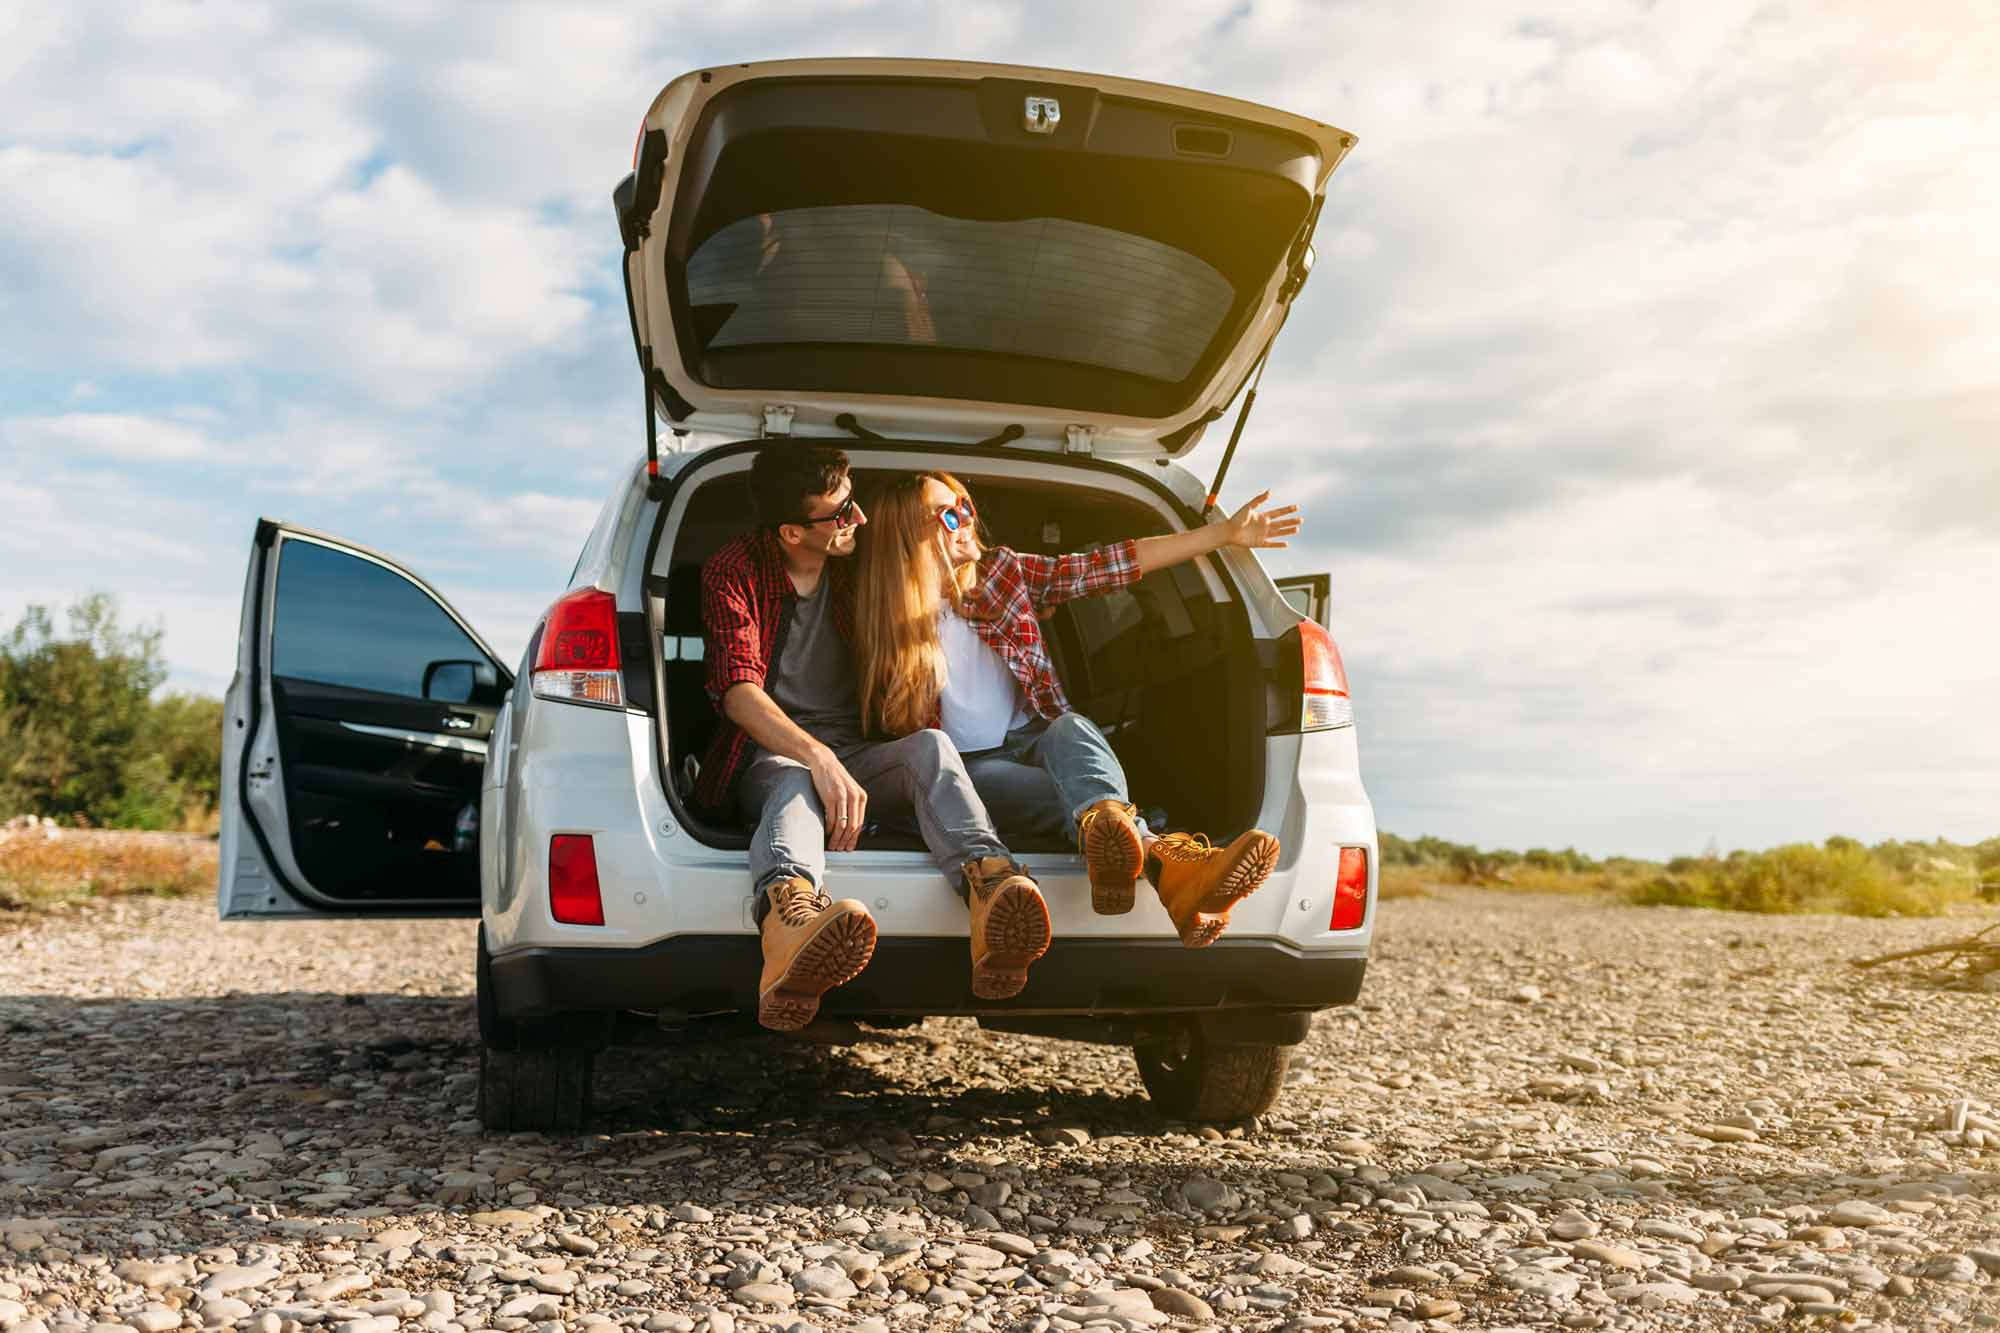 Couple sitting in open back of car with open hatch on rocky road